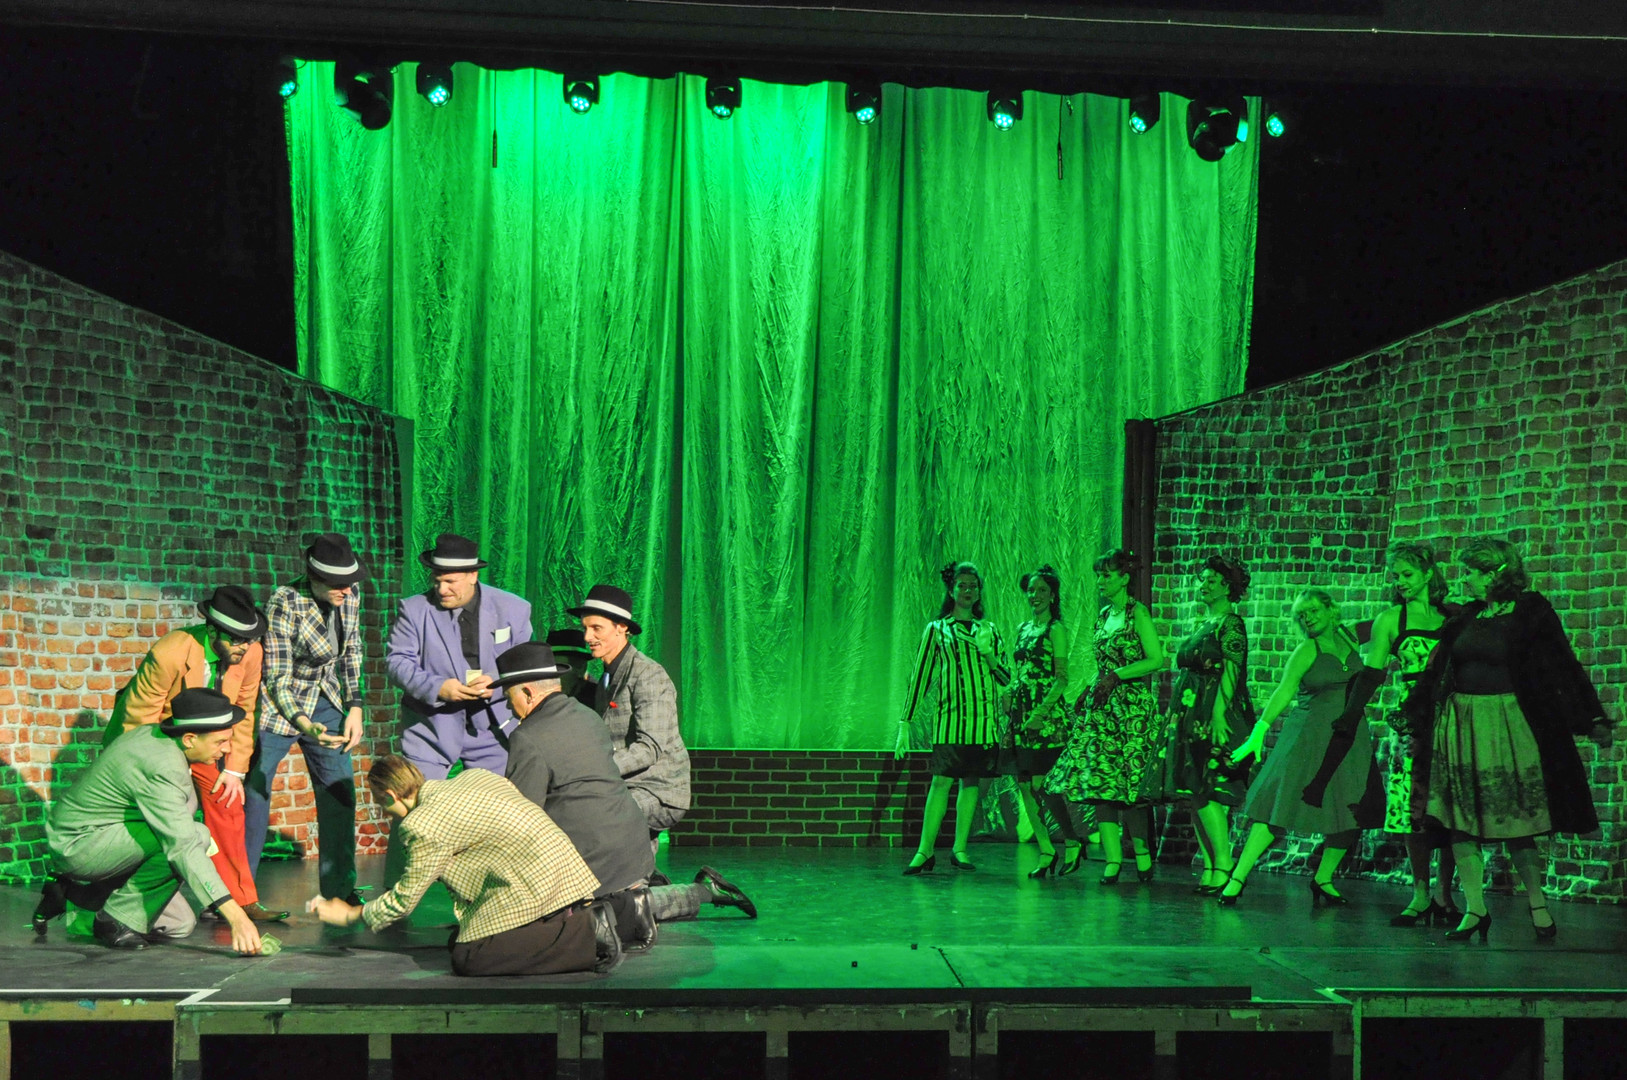 Guys & Dolls - Display 65 (52 of 65).jpg